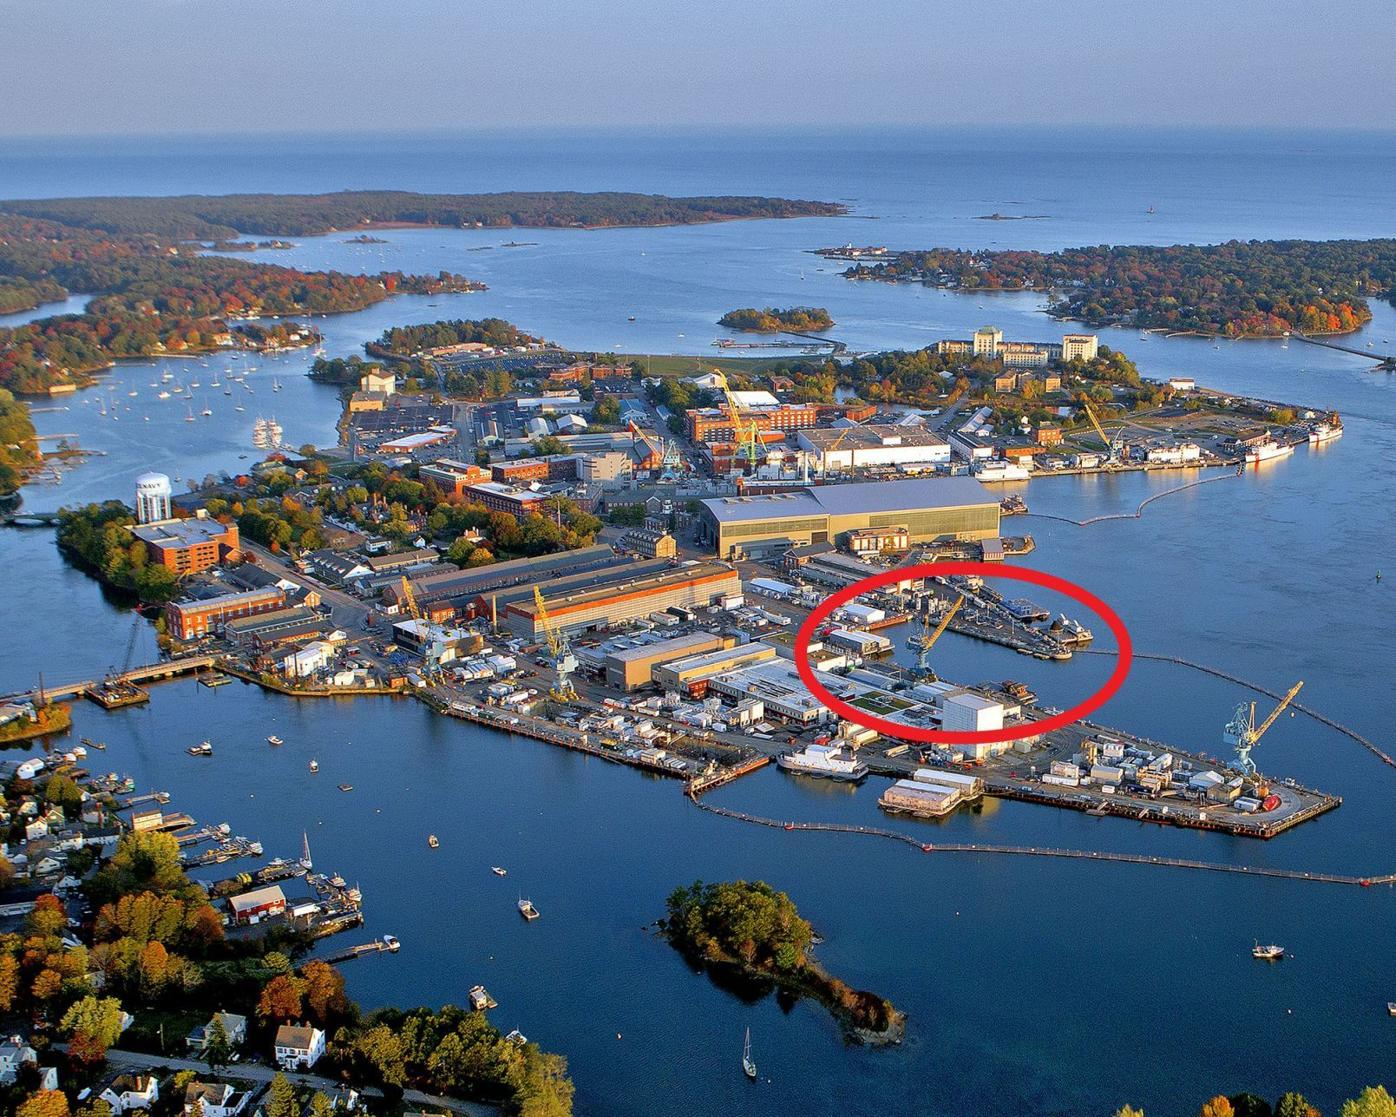 Aerial view of Portsmouth Naval Shipyard